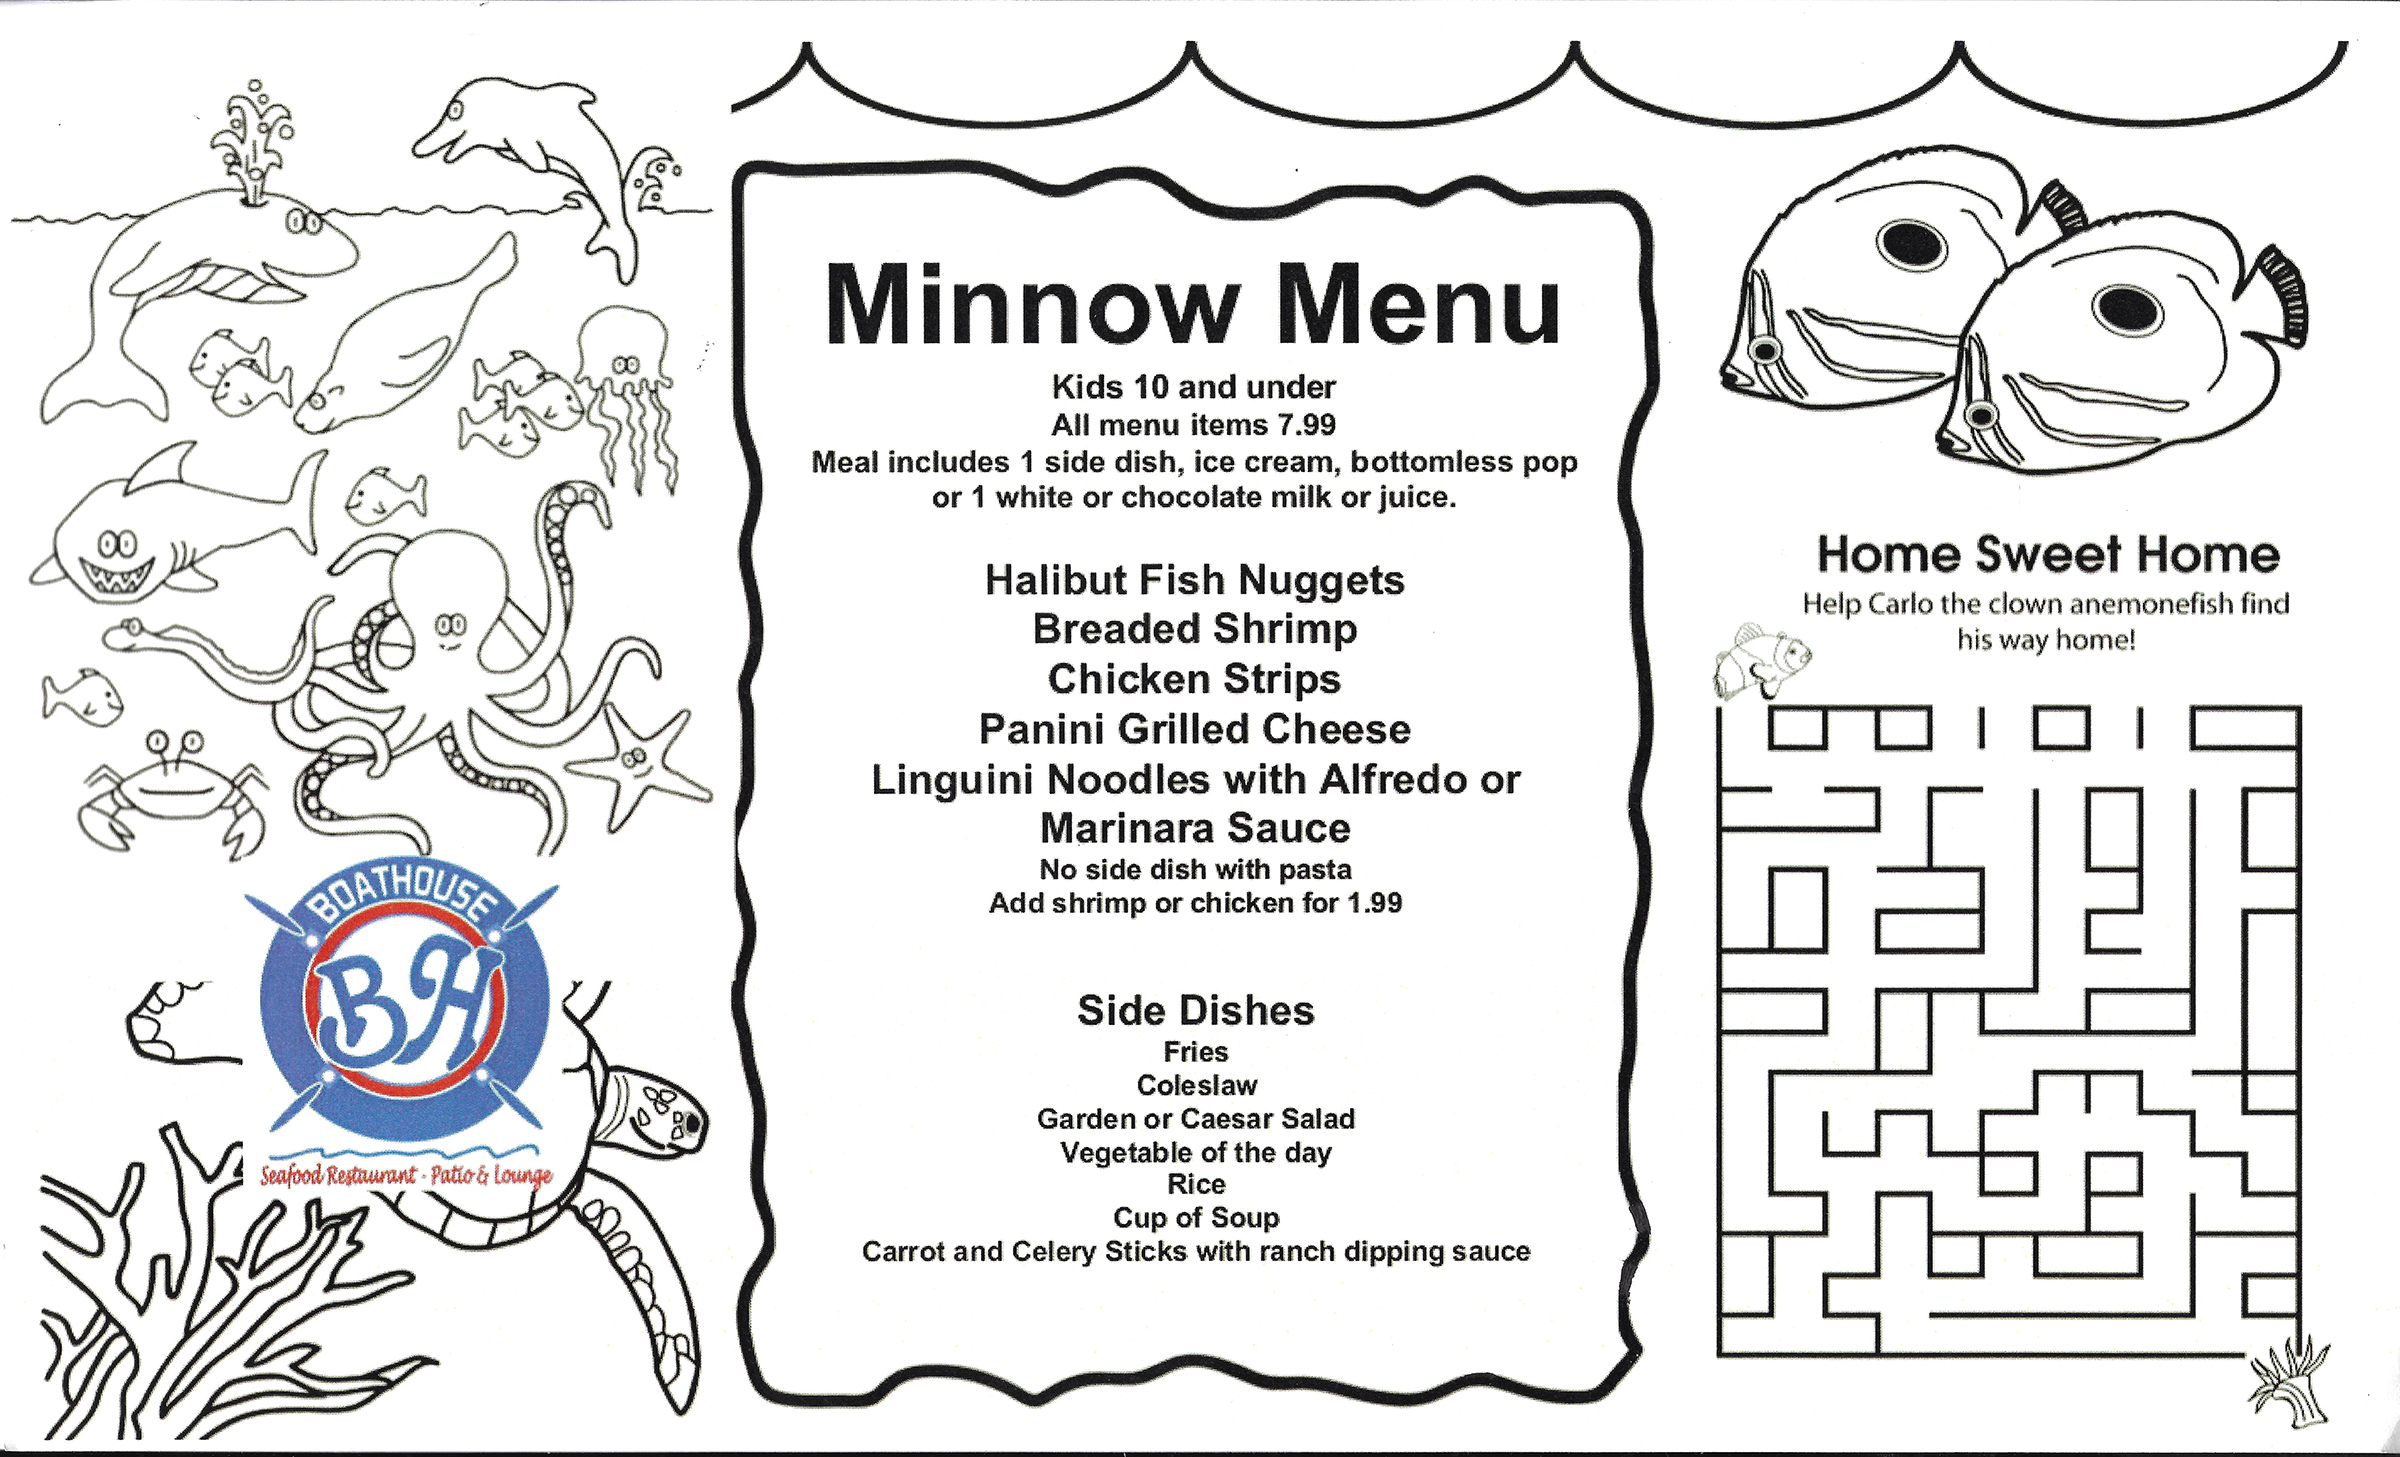 MINNOW MENU The Boathouse Seafood Restaurant